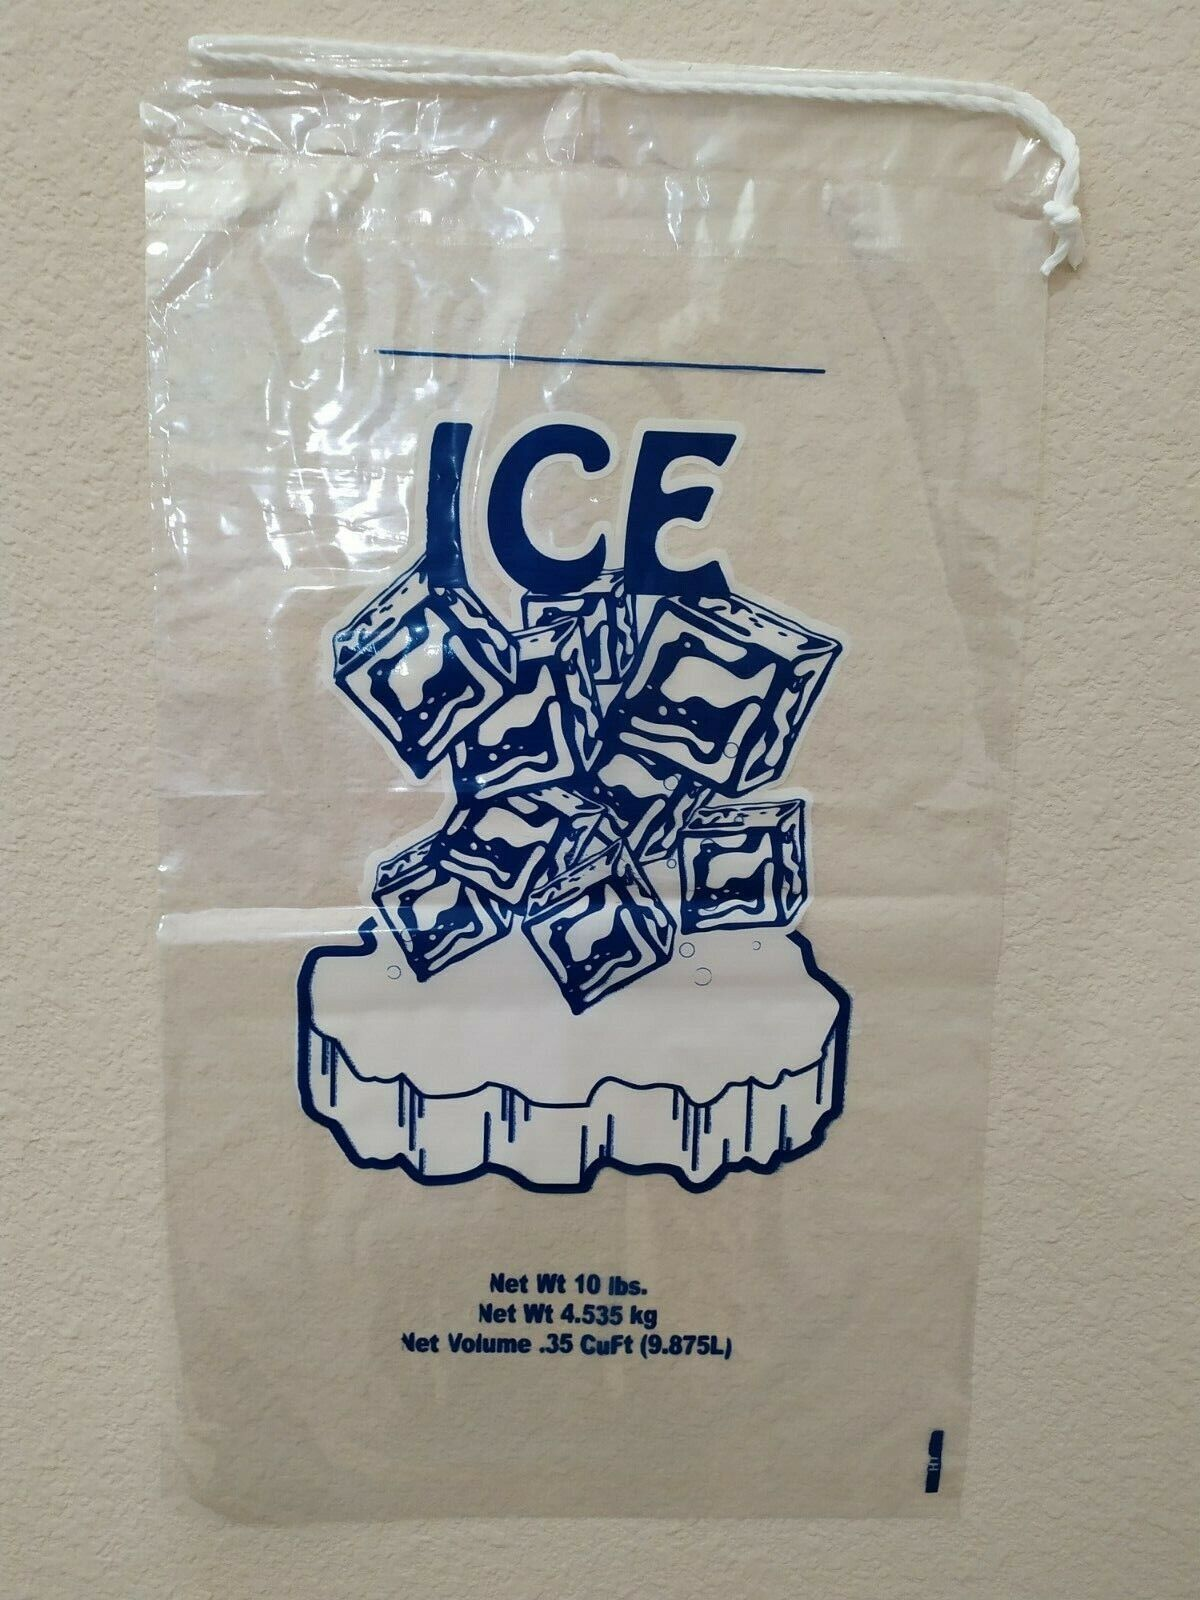 100 COMMERCIAL CRYSTAL 10 LB LBS 15 MIL Plastic Ice Bag Bags With Drawstring